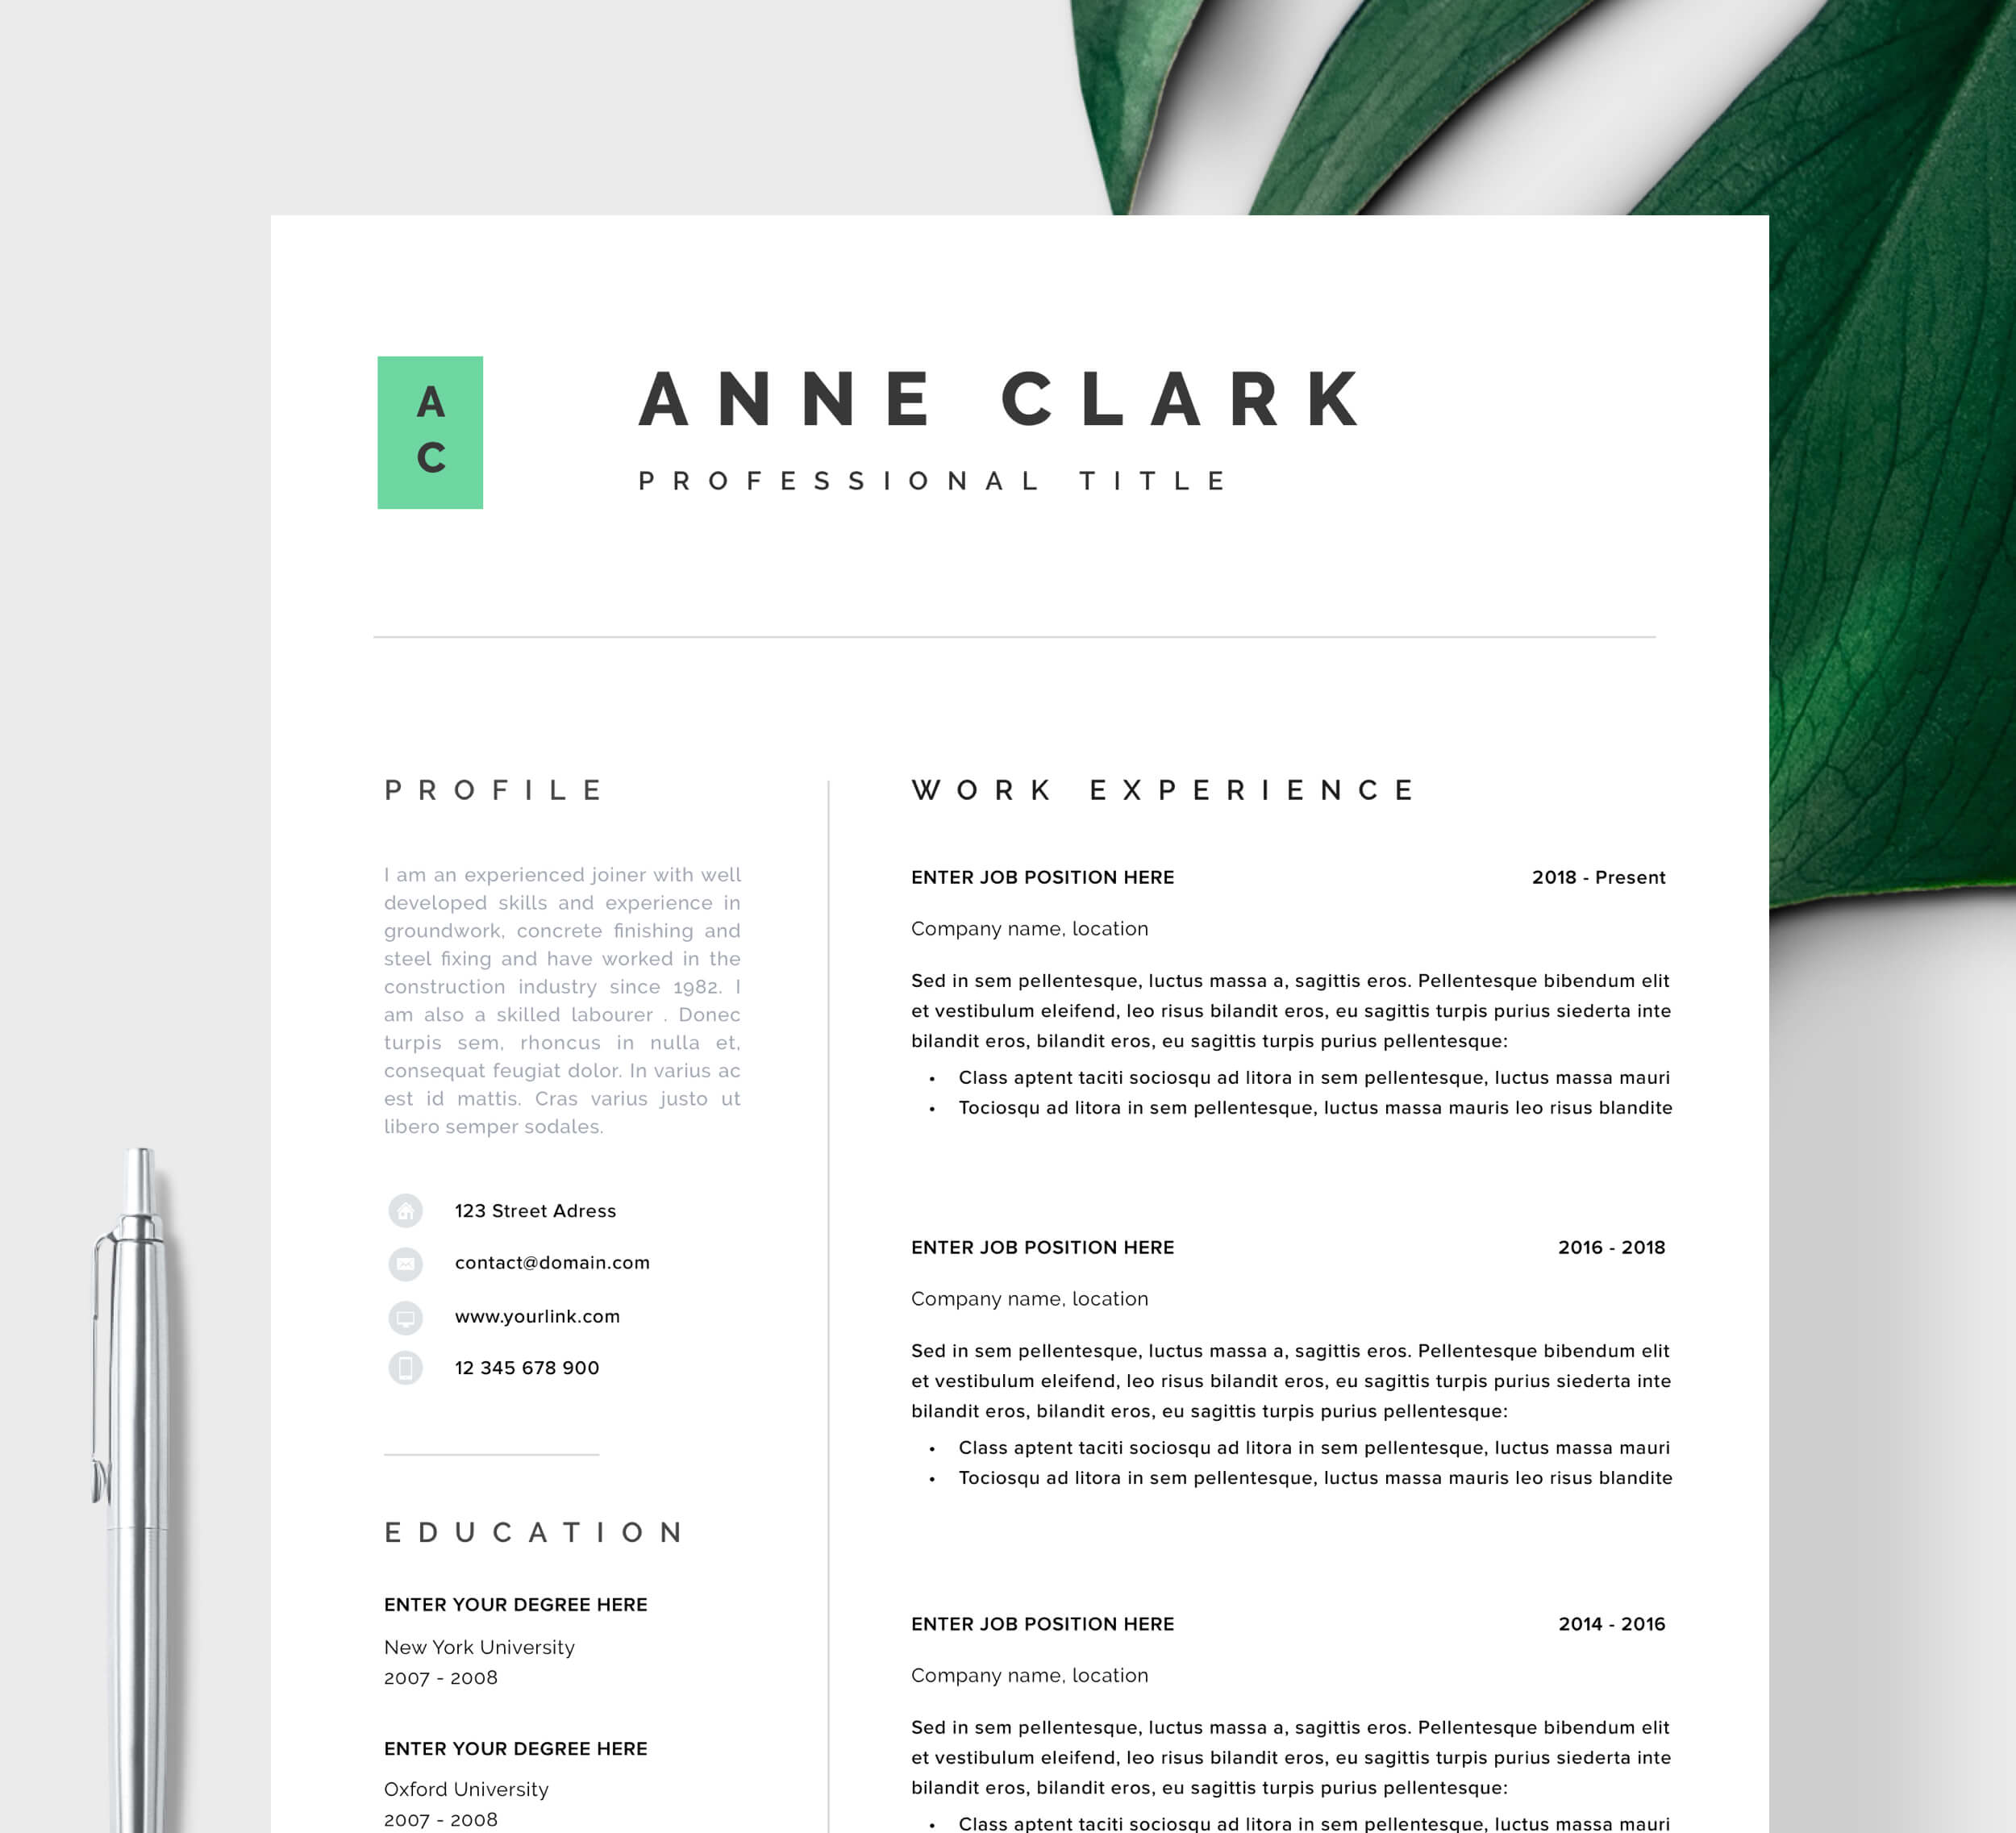 Architecture Resume Template from www.resumeangels.com